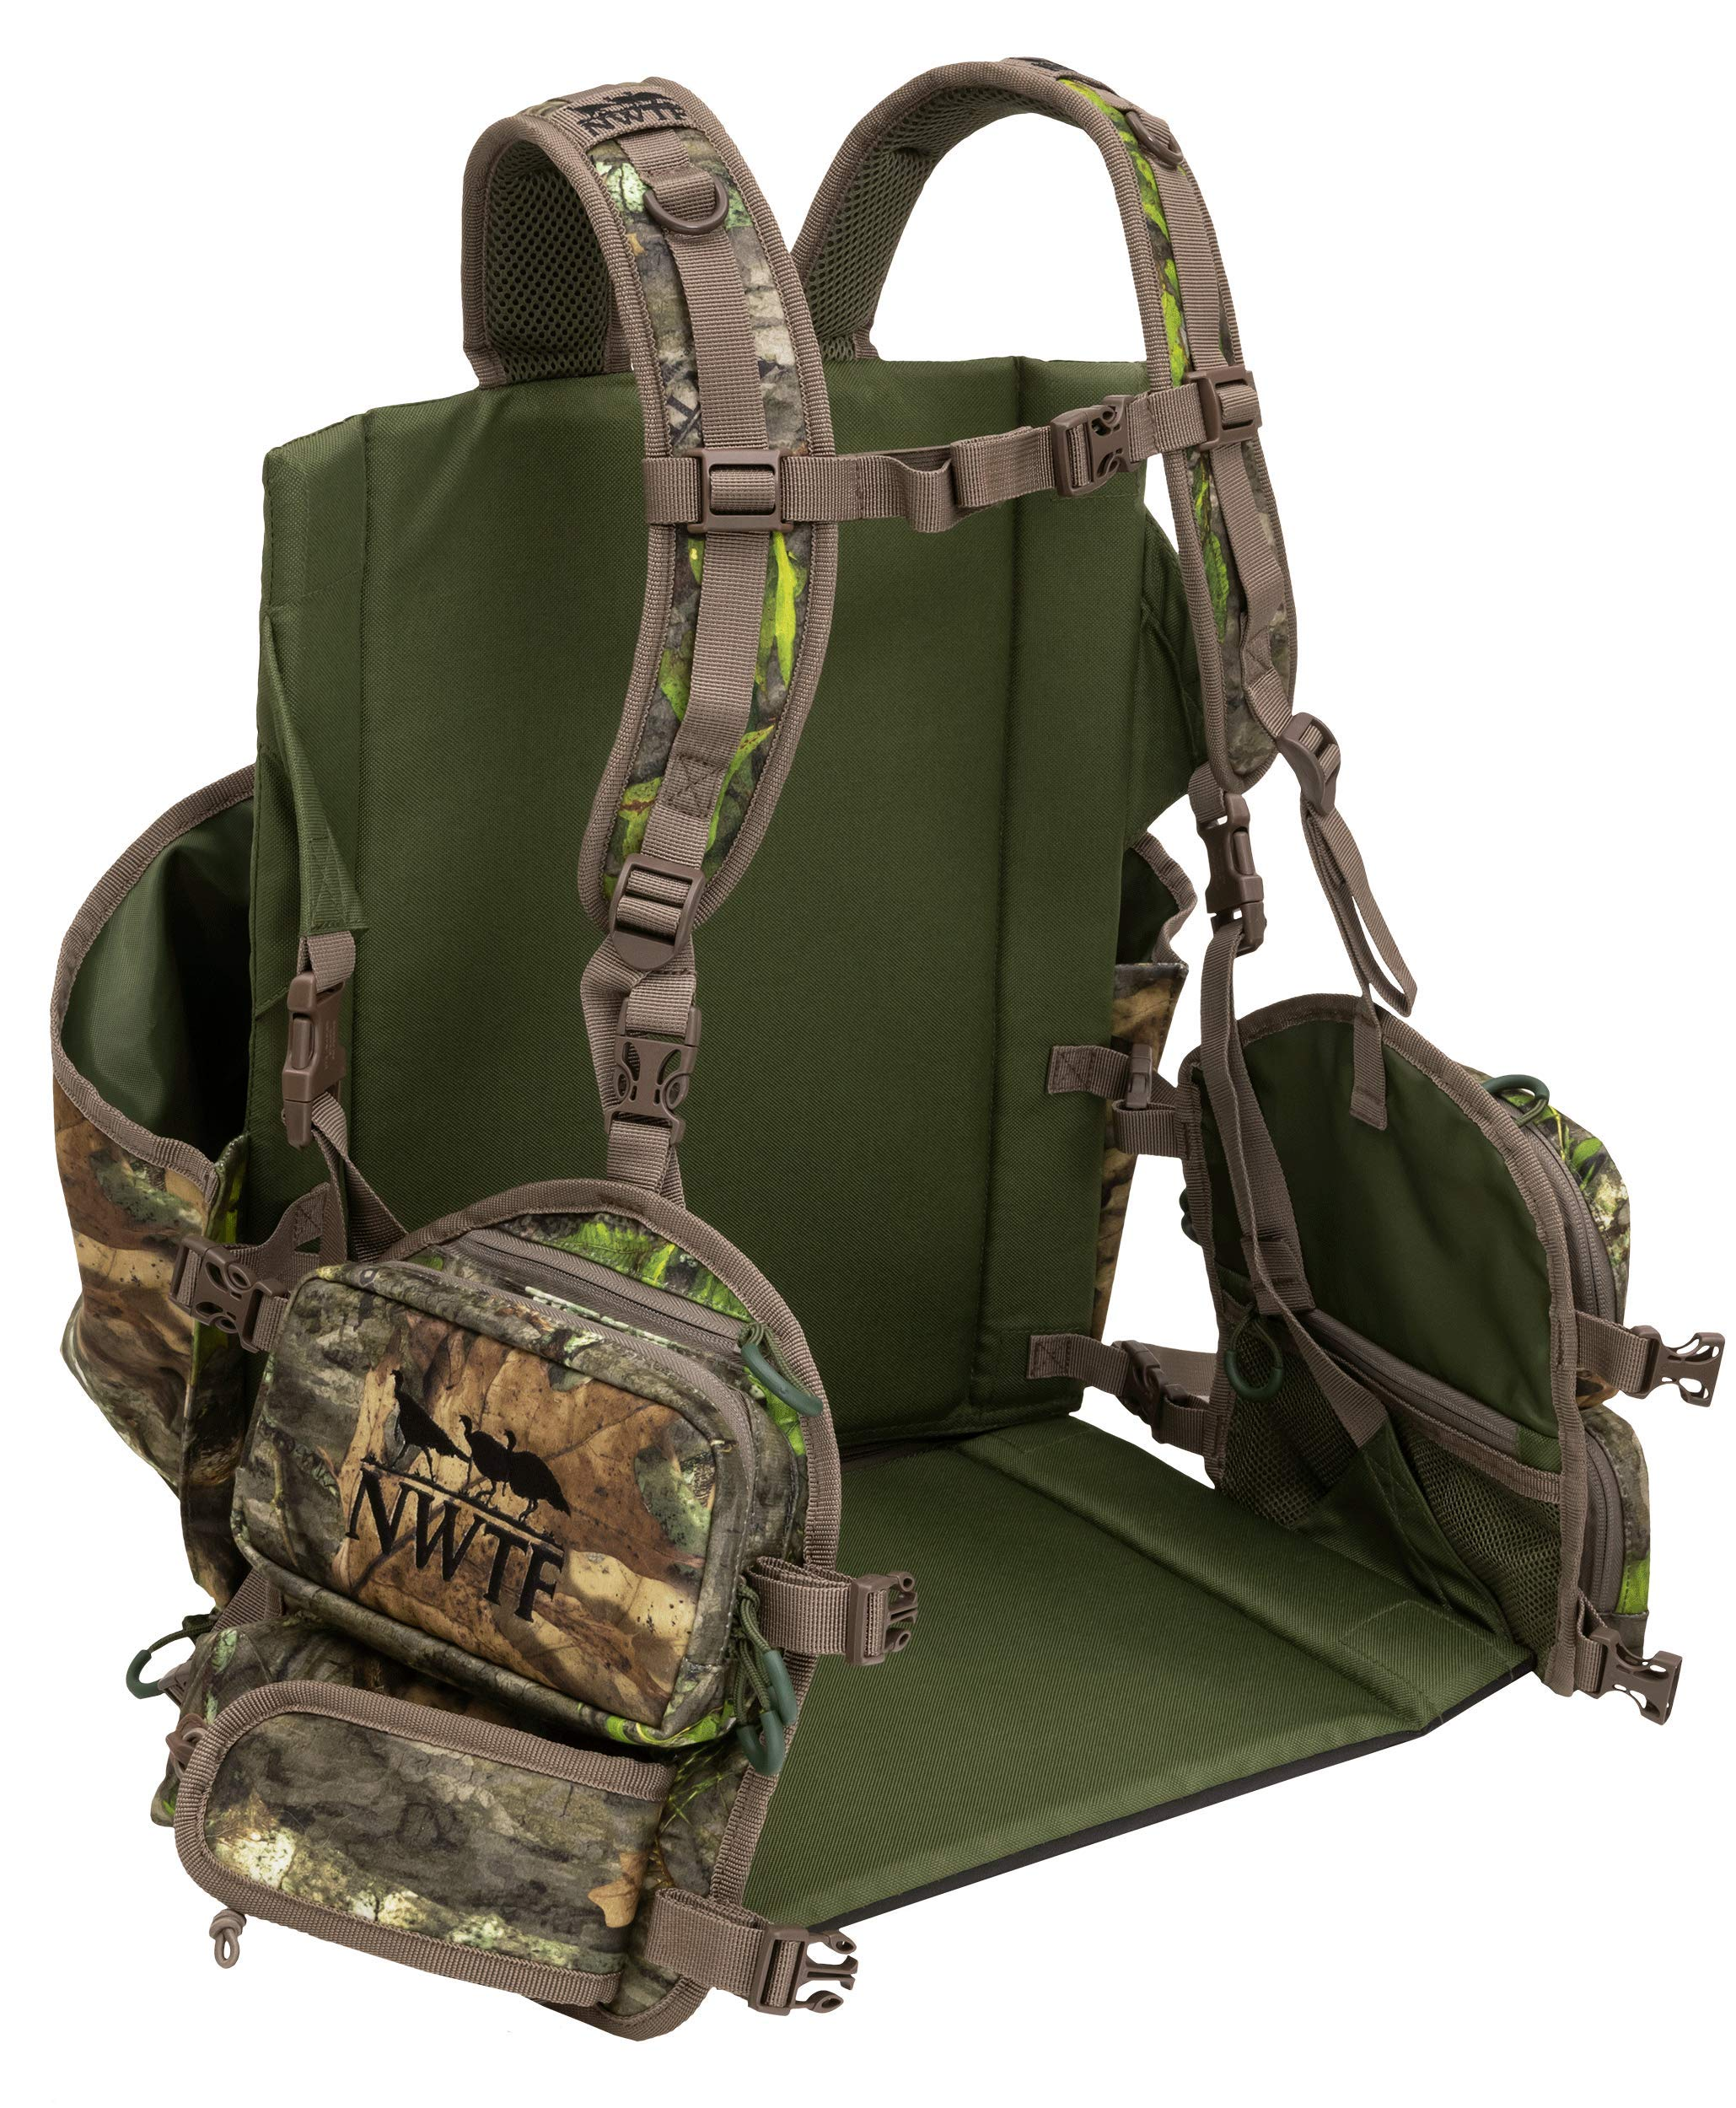 ALPS OutdoorZ NWTF Impact Turkey Vest Small, Mossy Oak Obsession